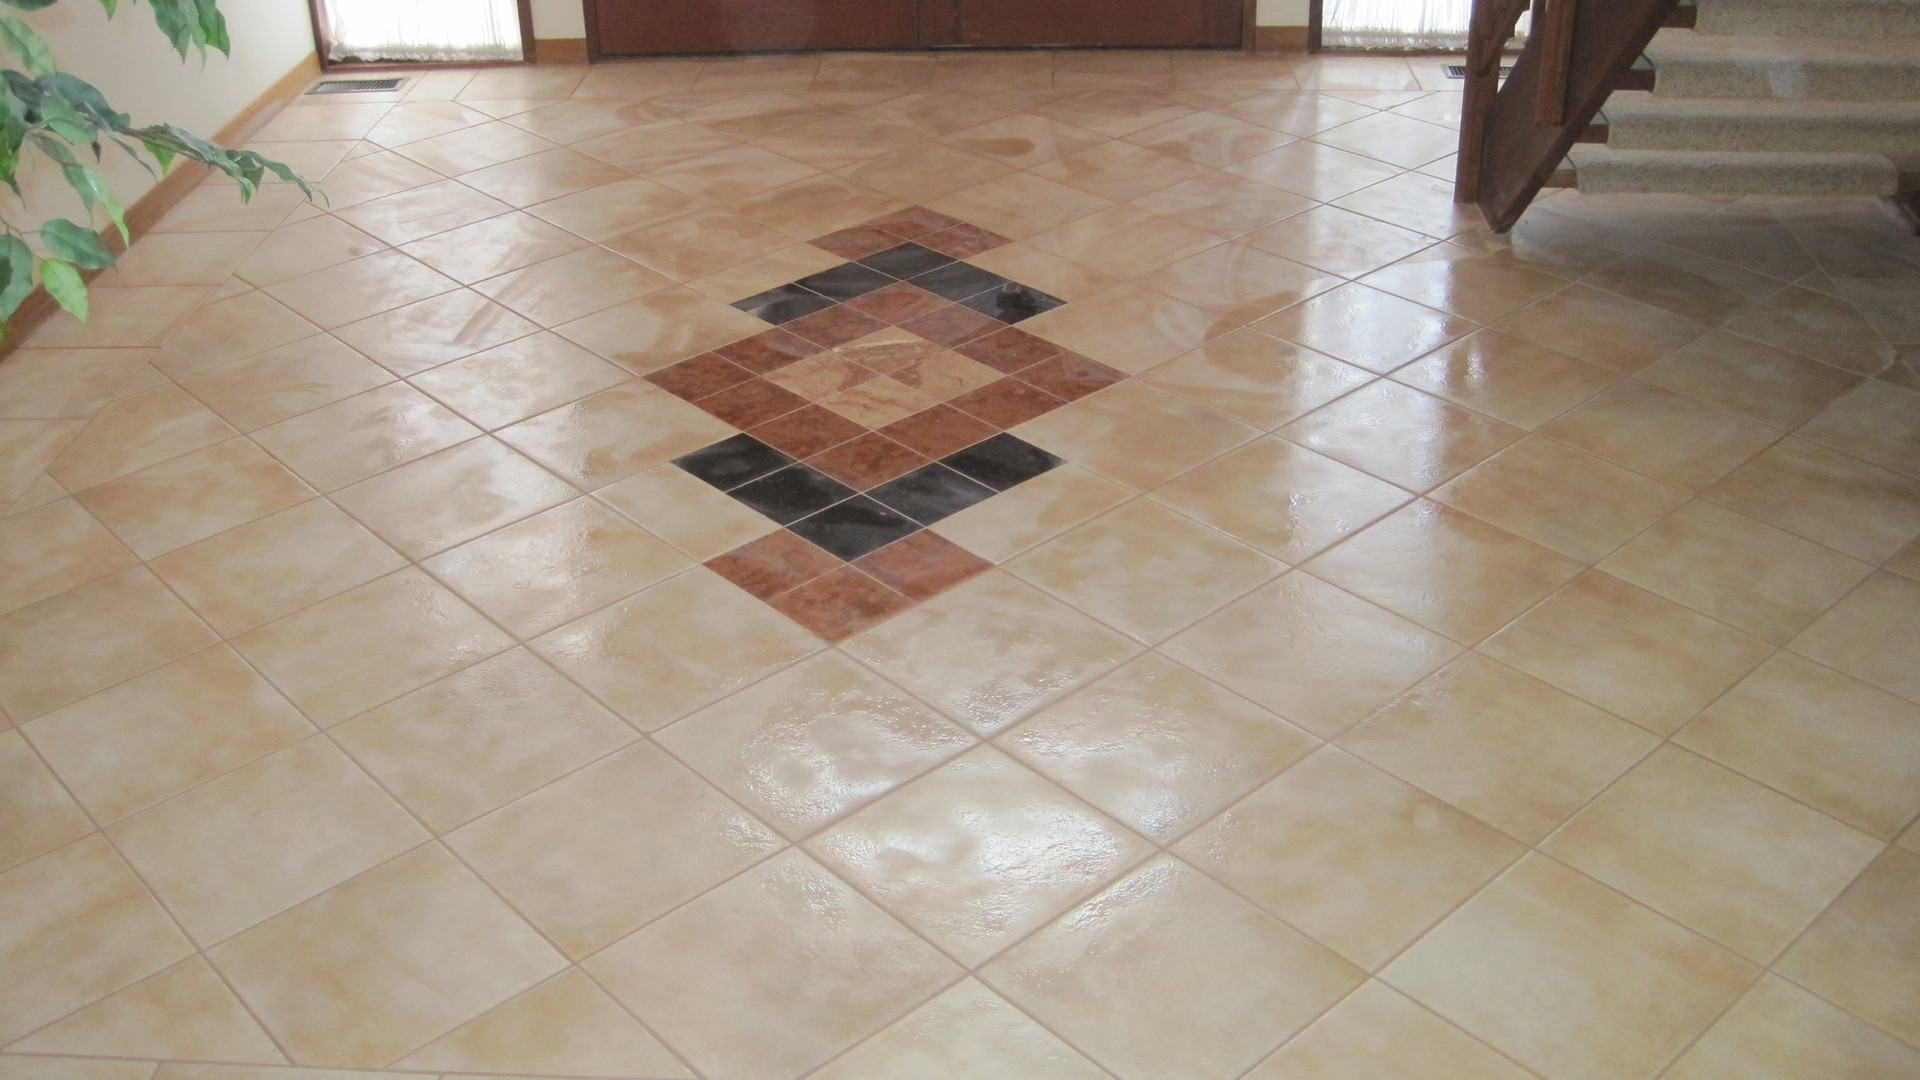 Tile work in Pikesville